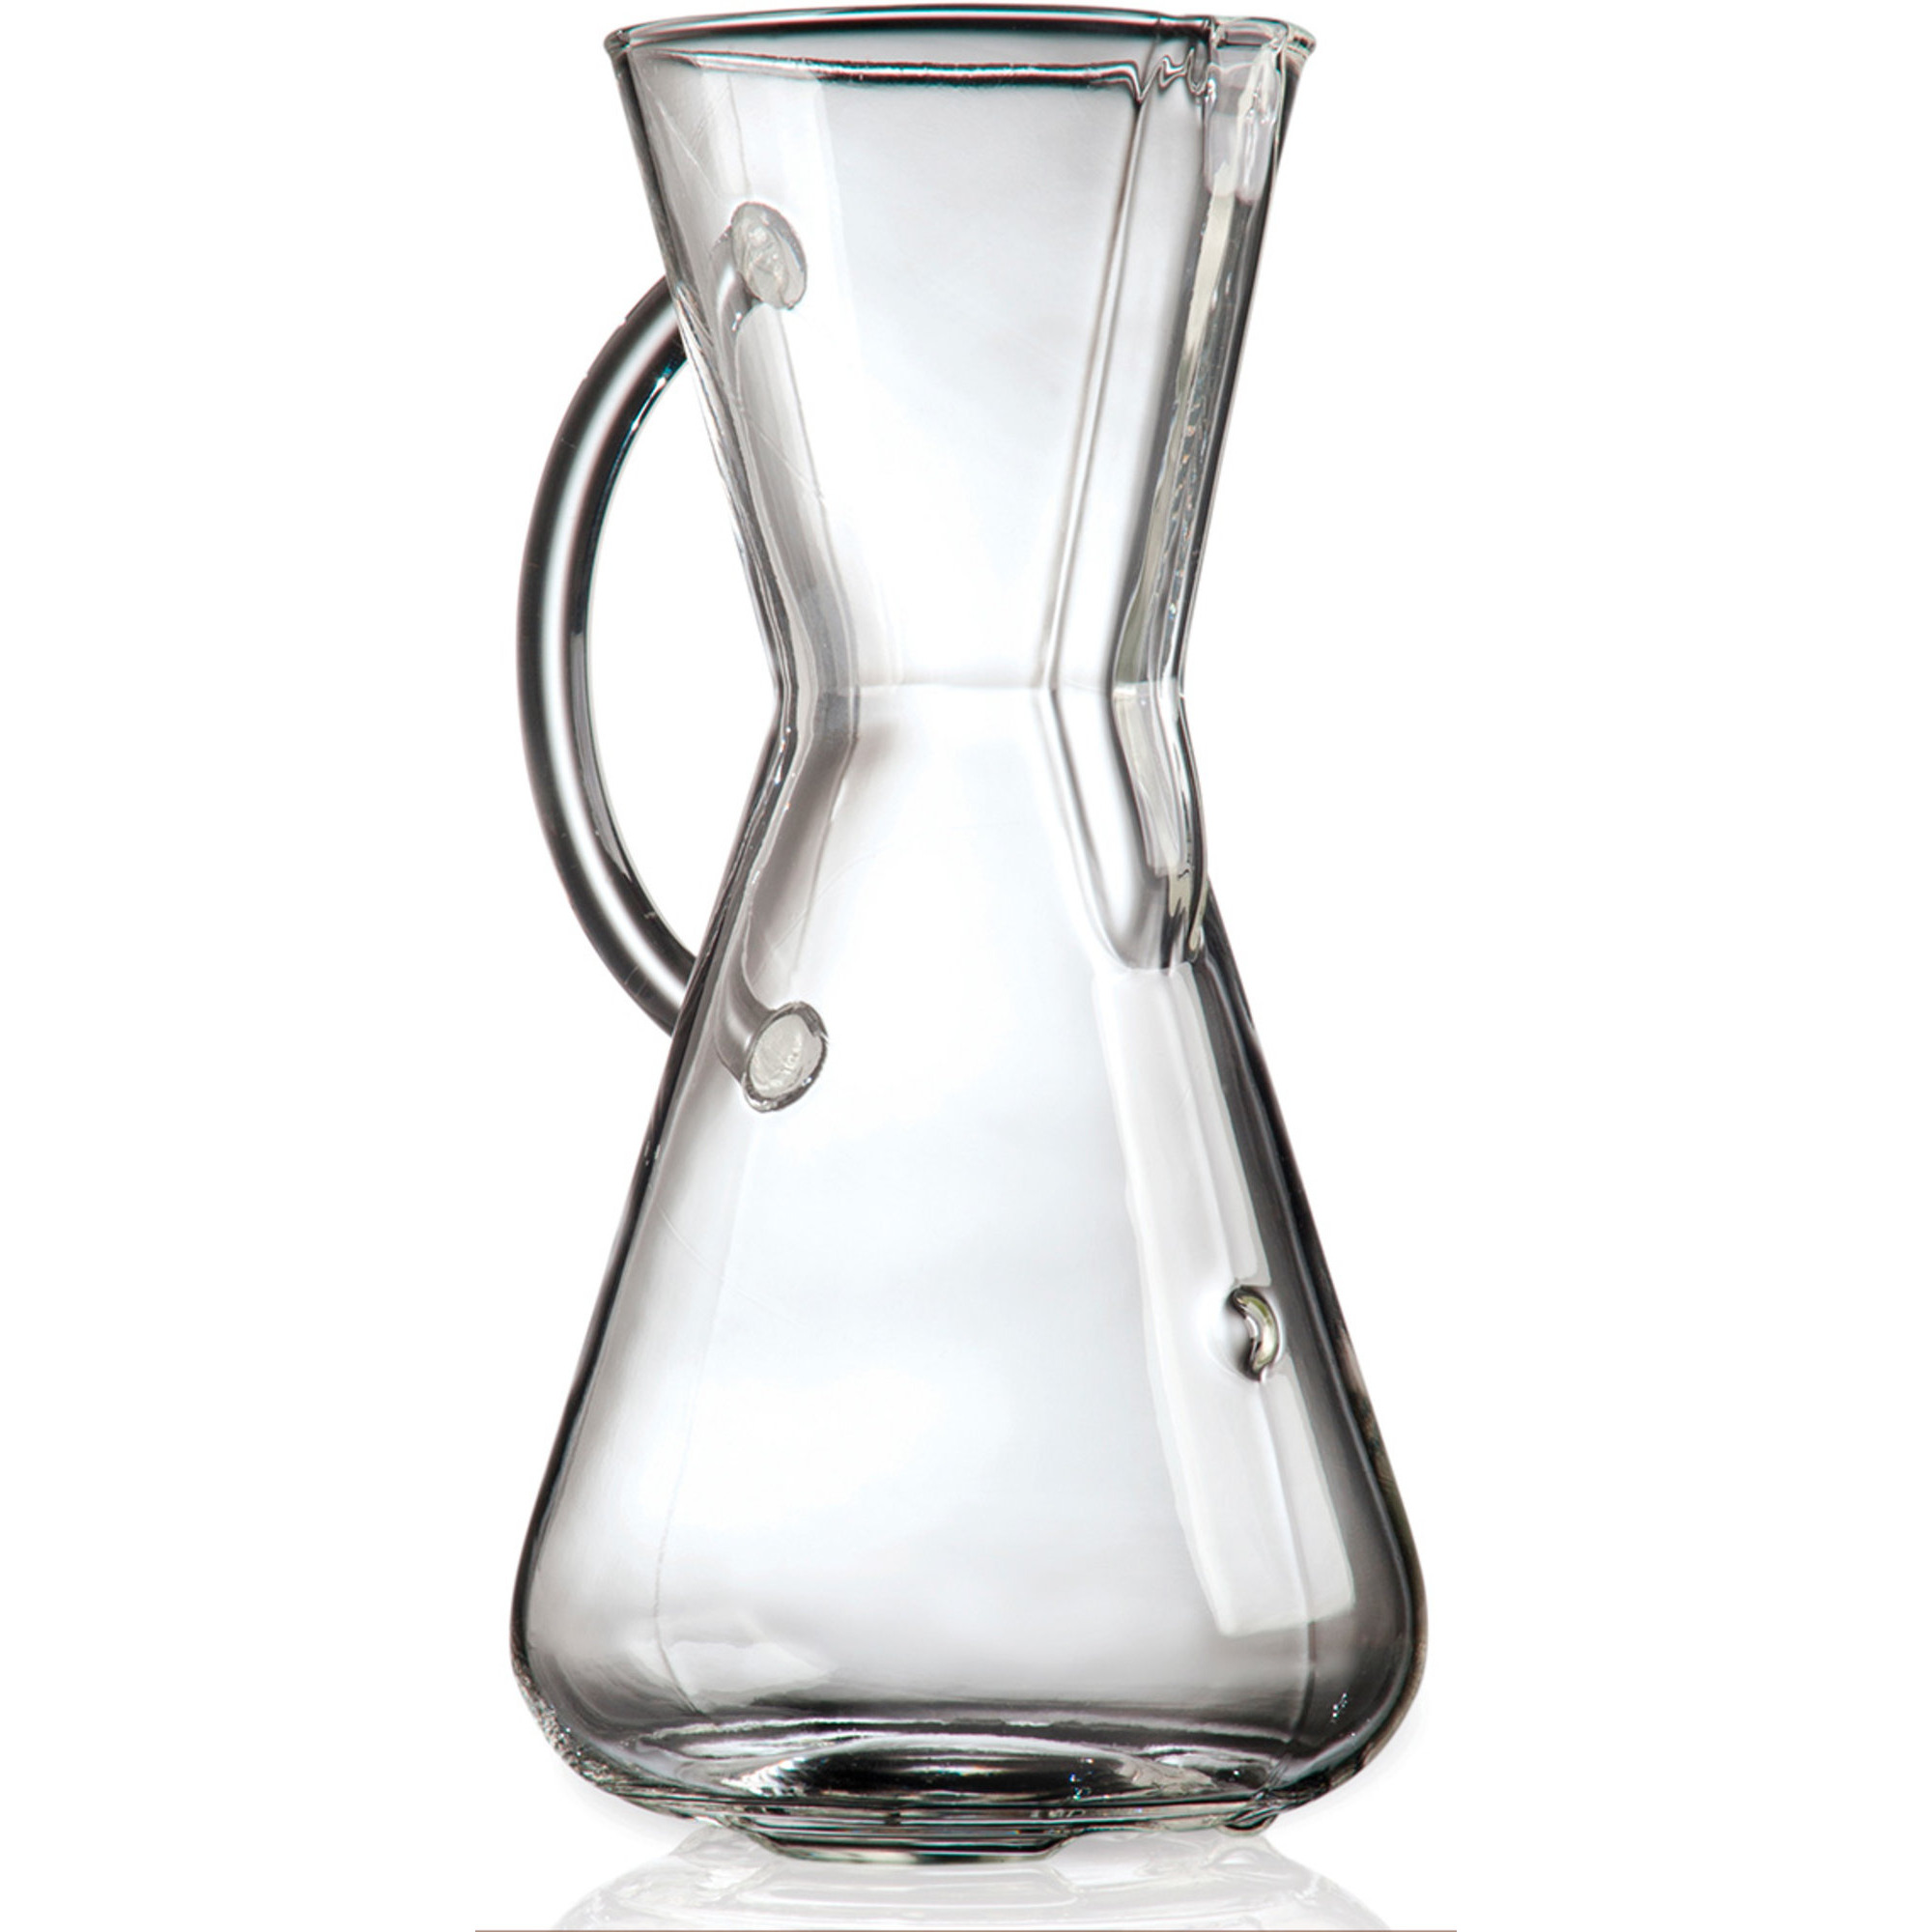 Chemex Kaffebryggare 3 Koppar Glass Handle